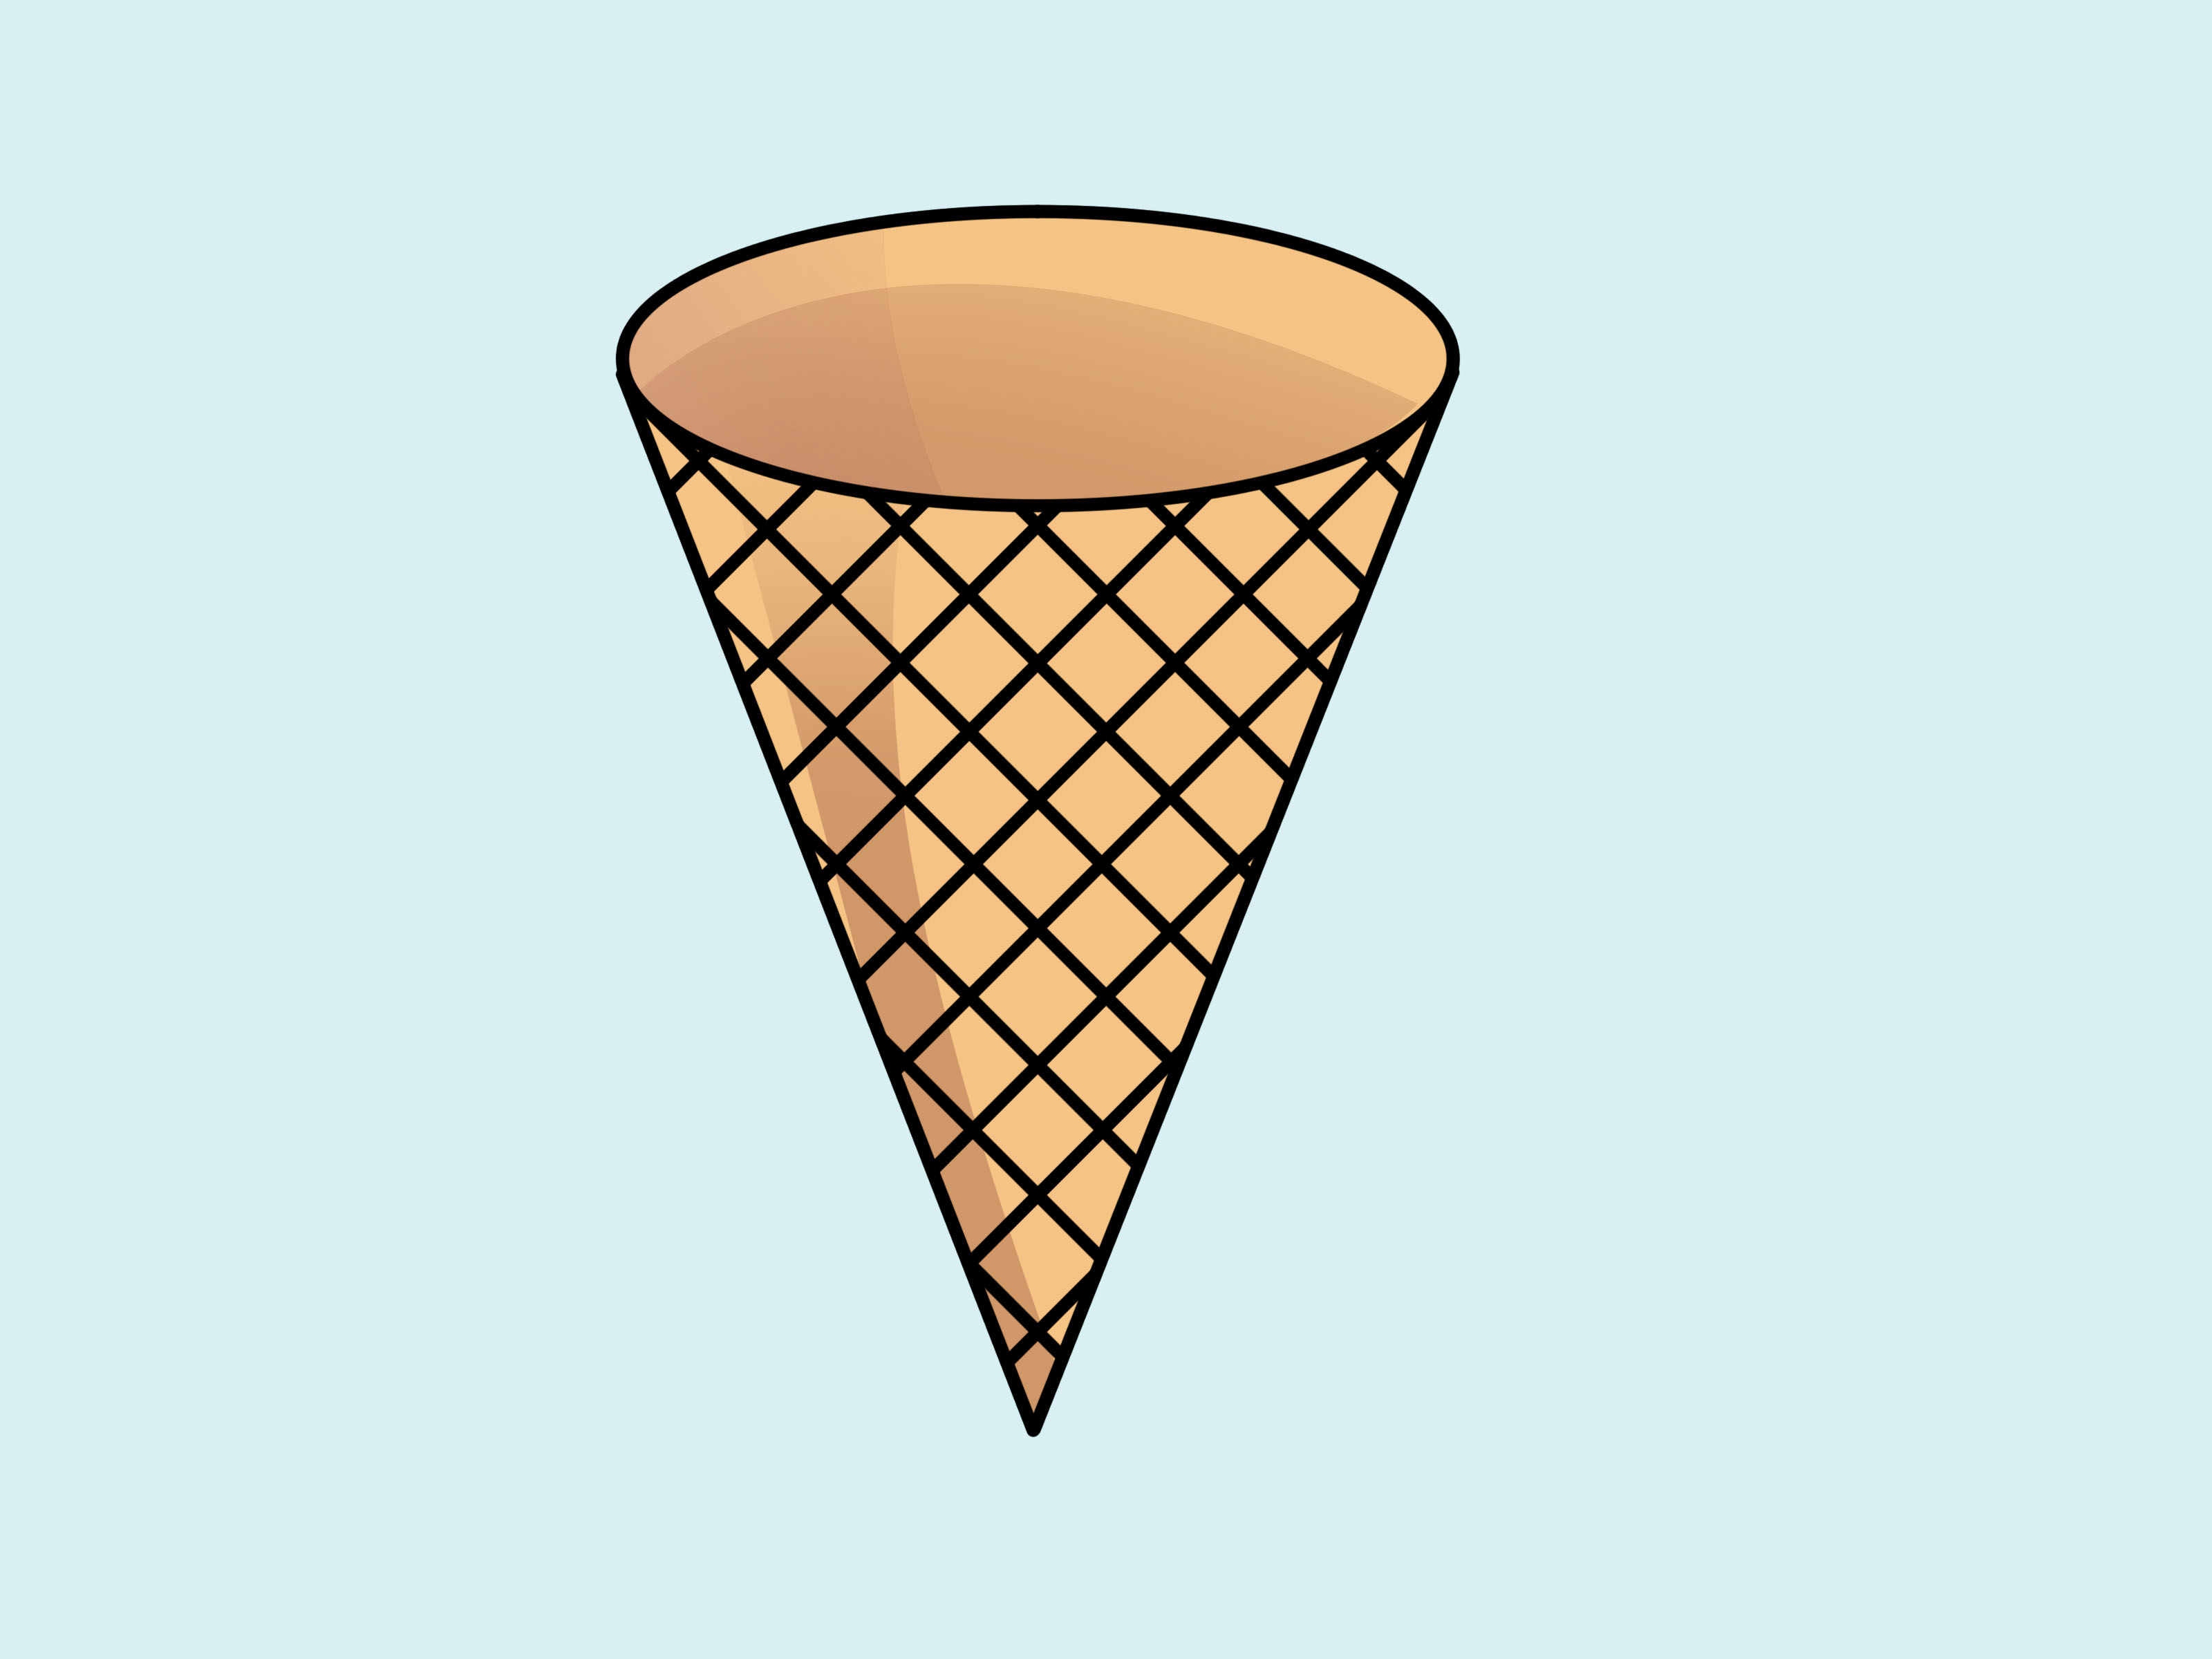 jpg royalty free stock Free images of ice. Waffle cone clipart